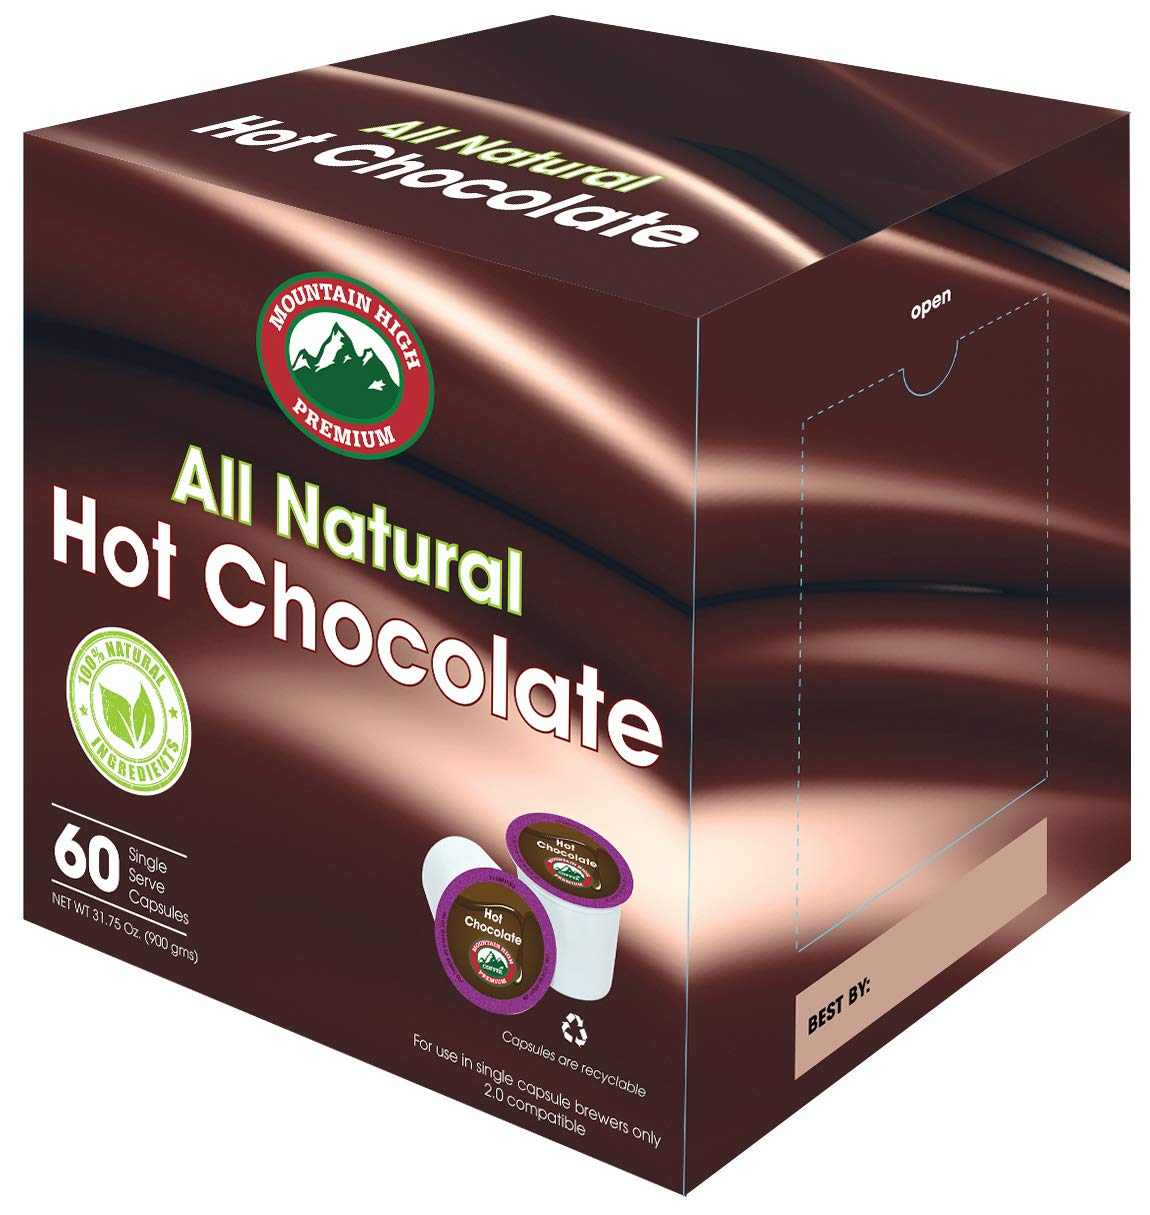 Mountain High All Natural Hot Chocolate K Cups 2.0 Compatible (Milk Chocolate, 60) by Mountain High Premium Coffee